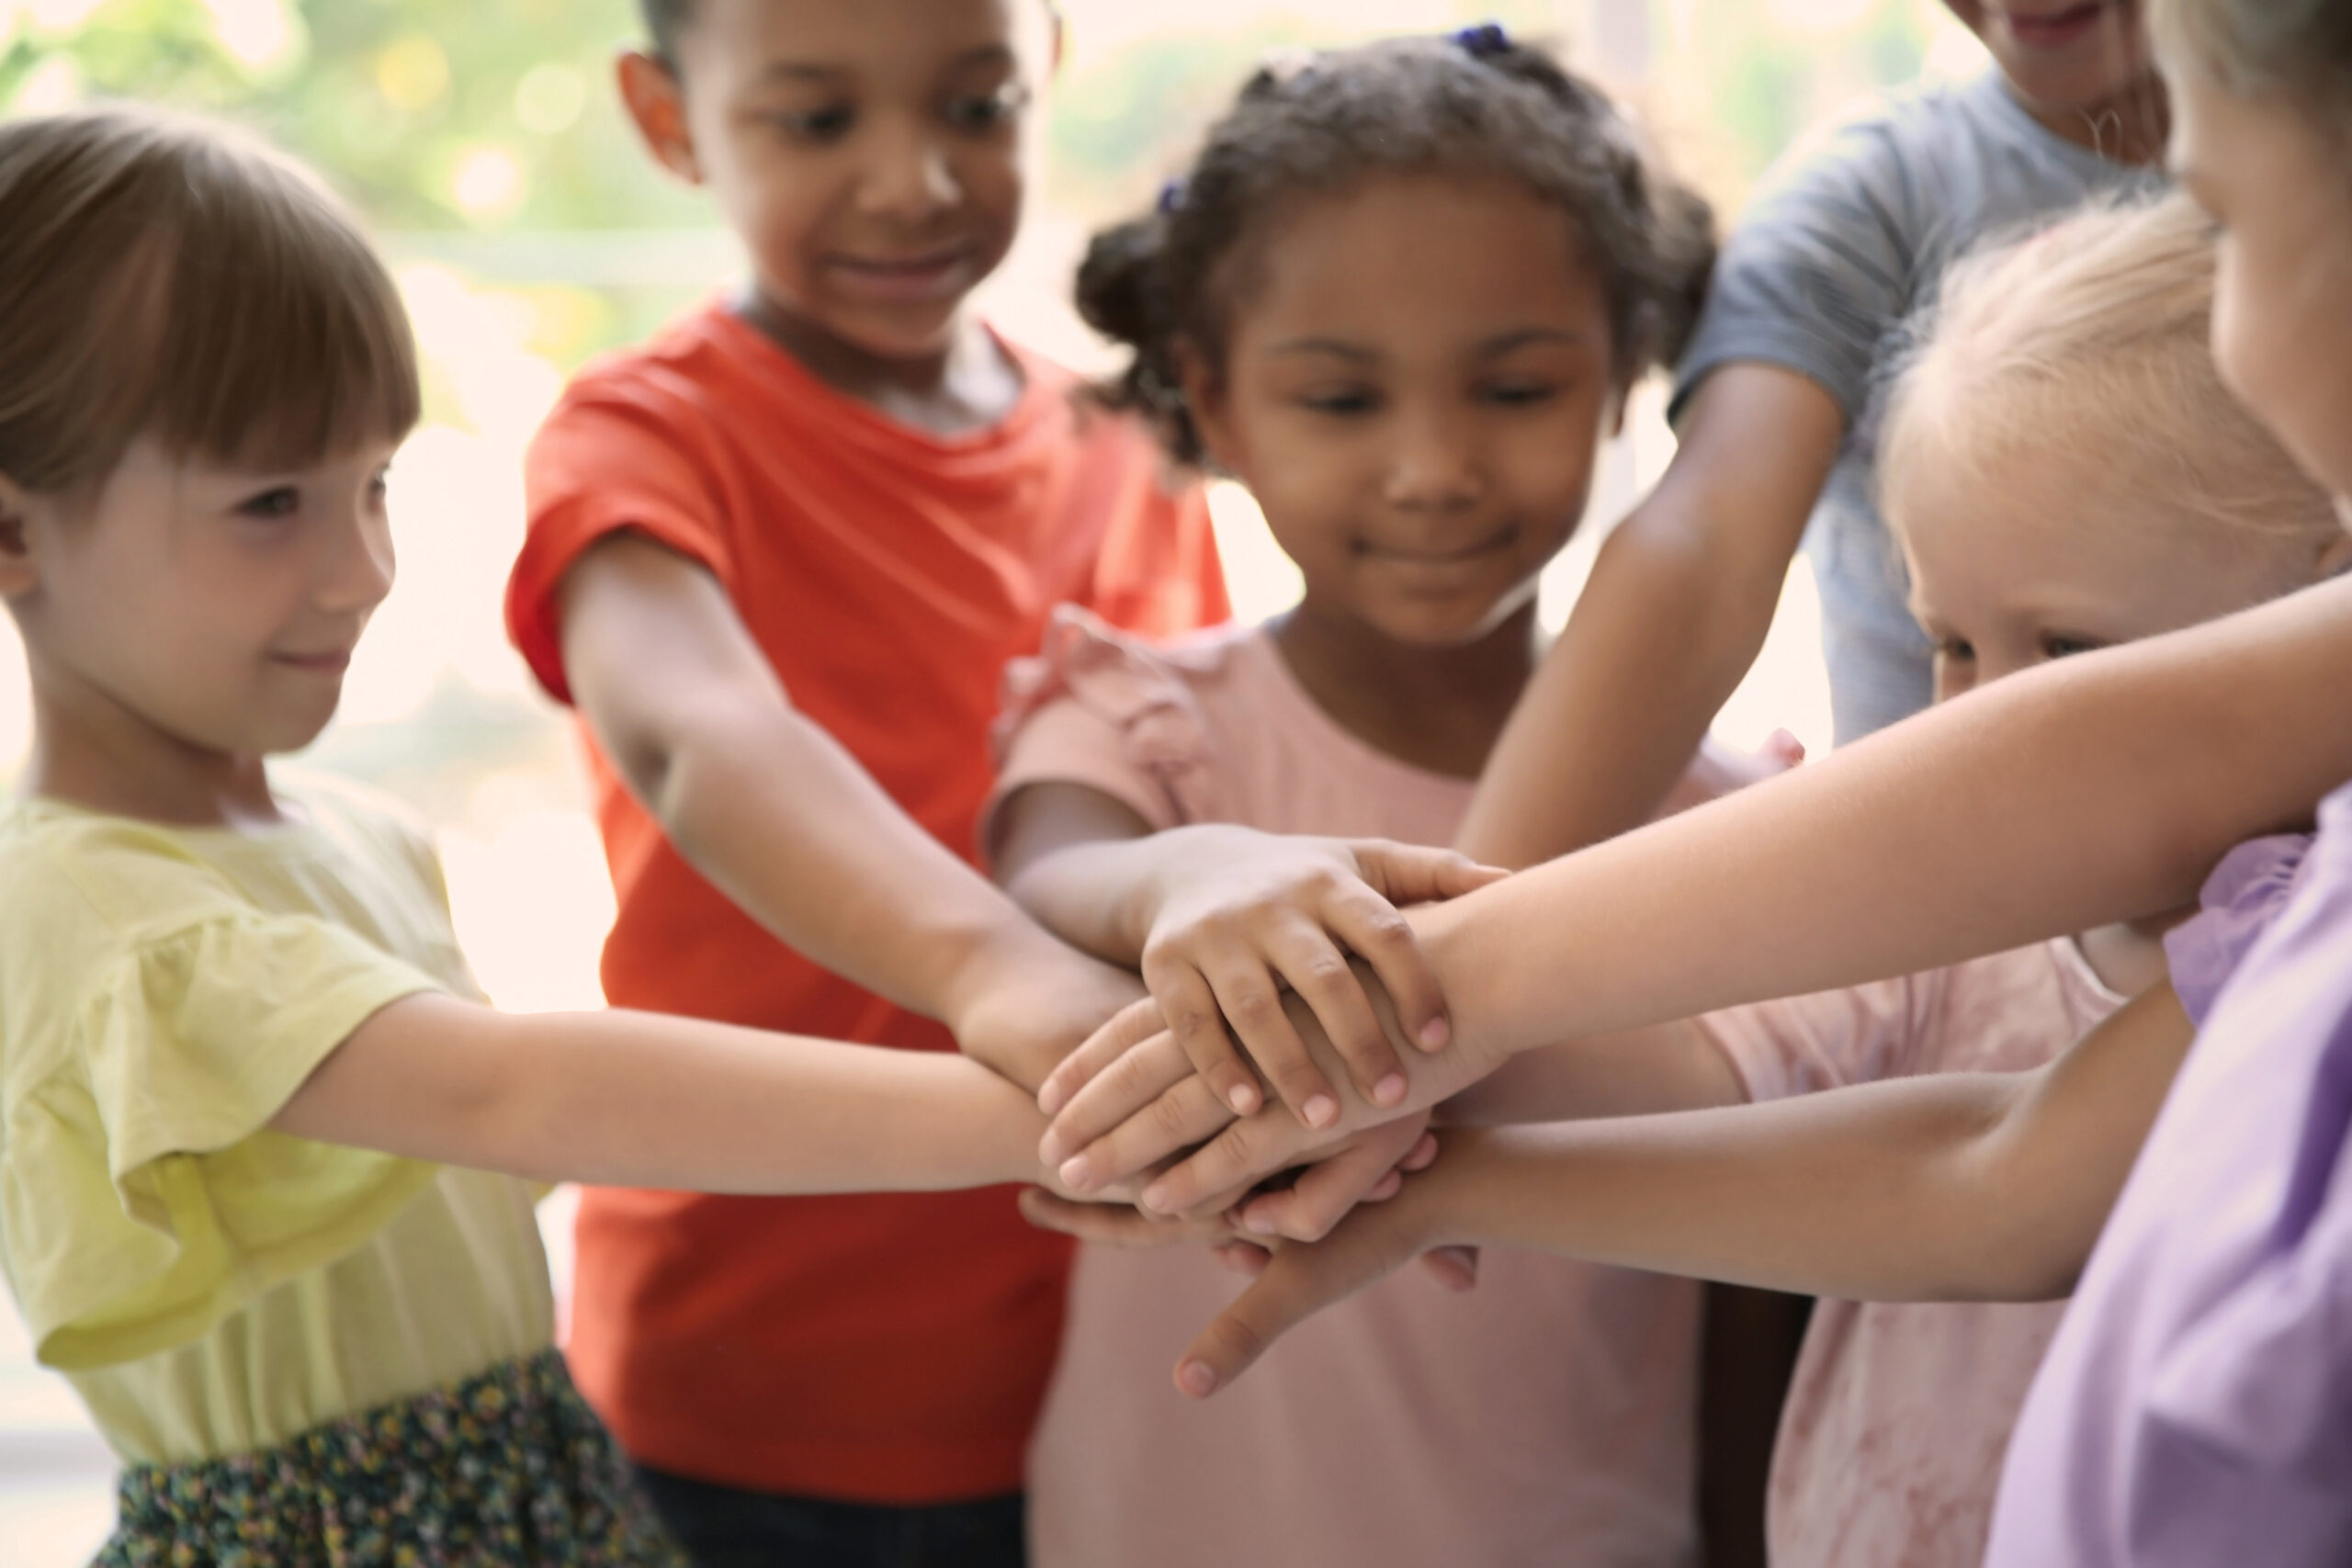 Functional Kids Clinic has been proudly serving families in Minnesota's greater Twin Cities area since 2001